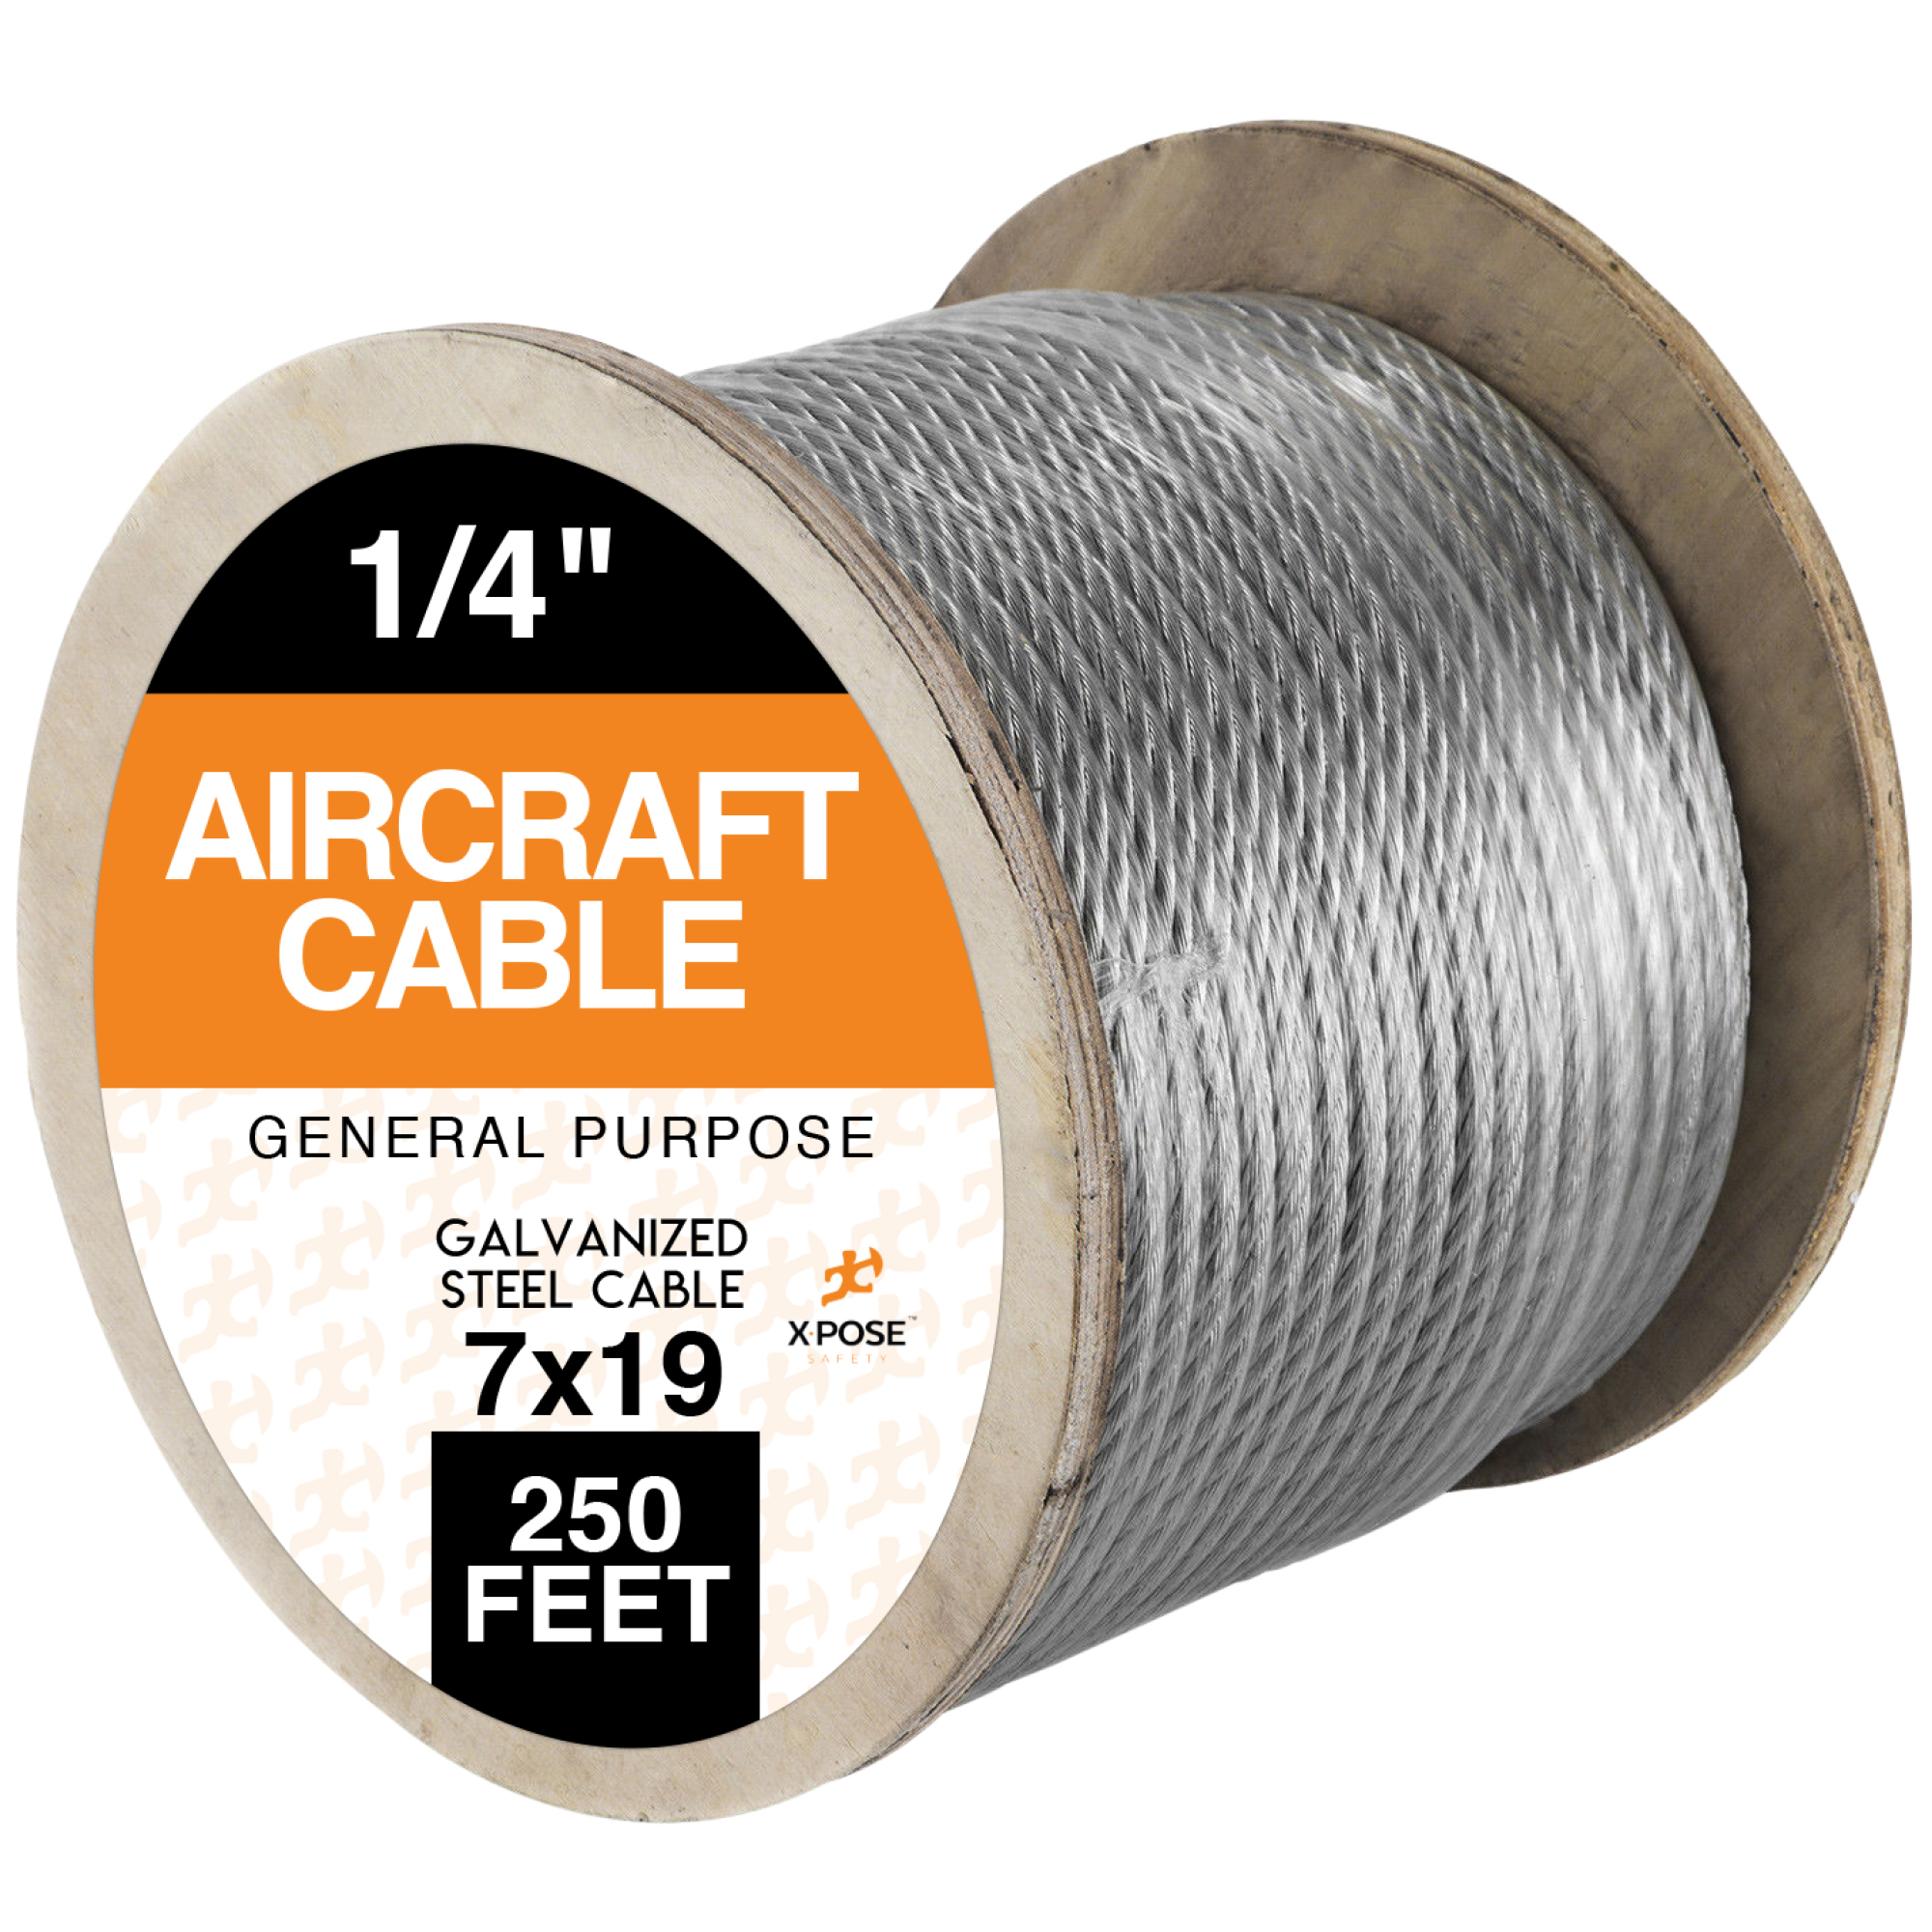 "Galvanized Steel Aircraft Cable Wire 7x19 Strand Core 1/4"" x 250' GWS-250"